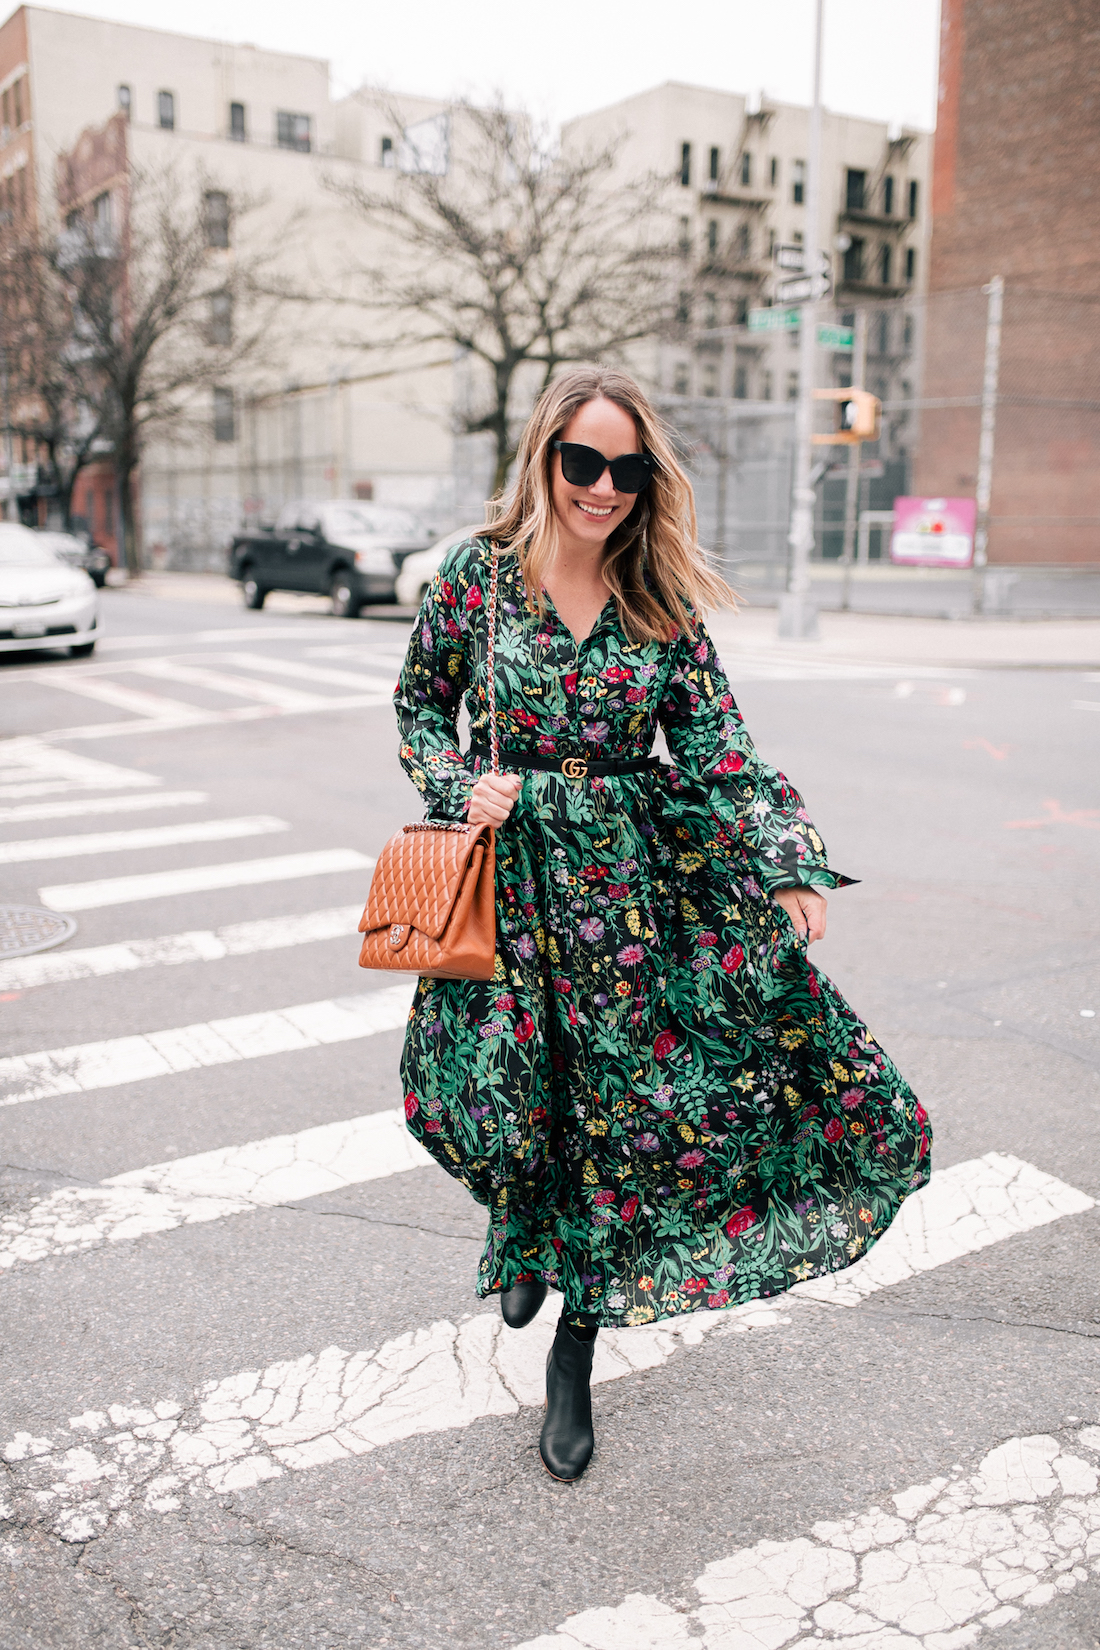 ASOS Floral Maxi Dress // Express Tights // Soludos Boots (on sale!)// Rachel Comey Earrings // Chanel Purse // Gucci Belt // Quay Sunglasses